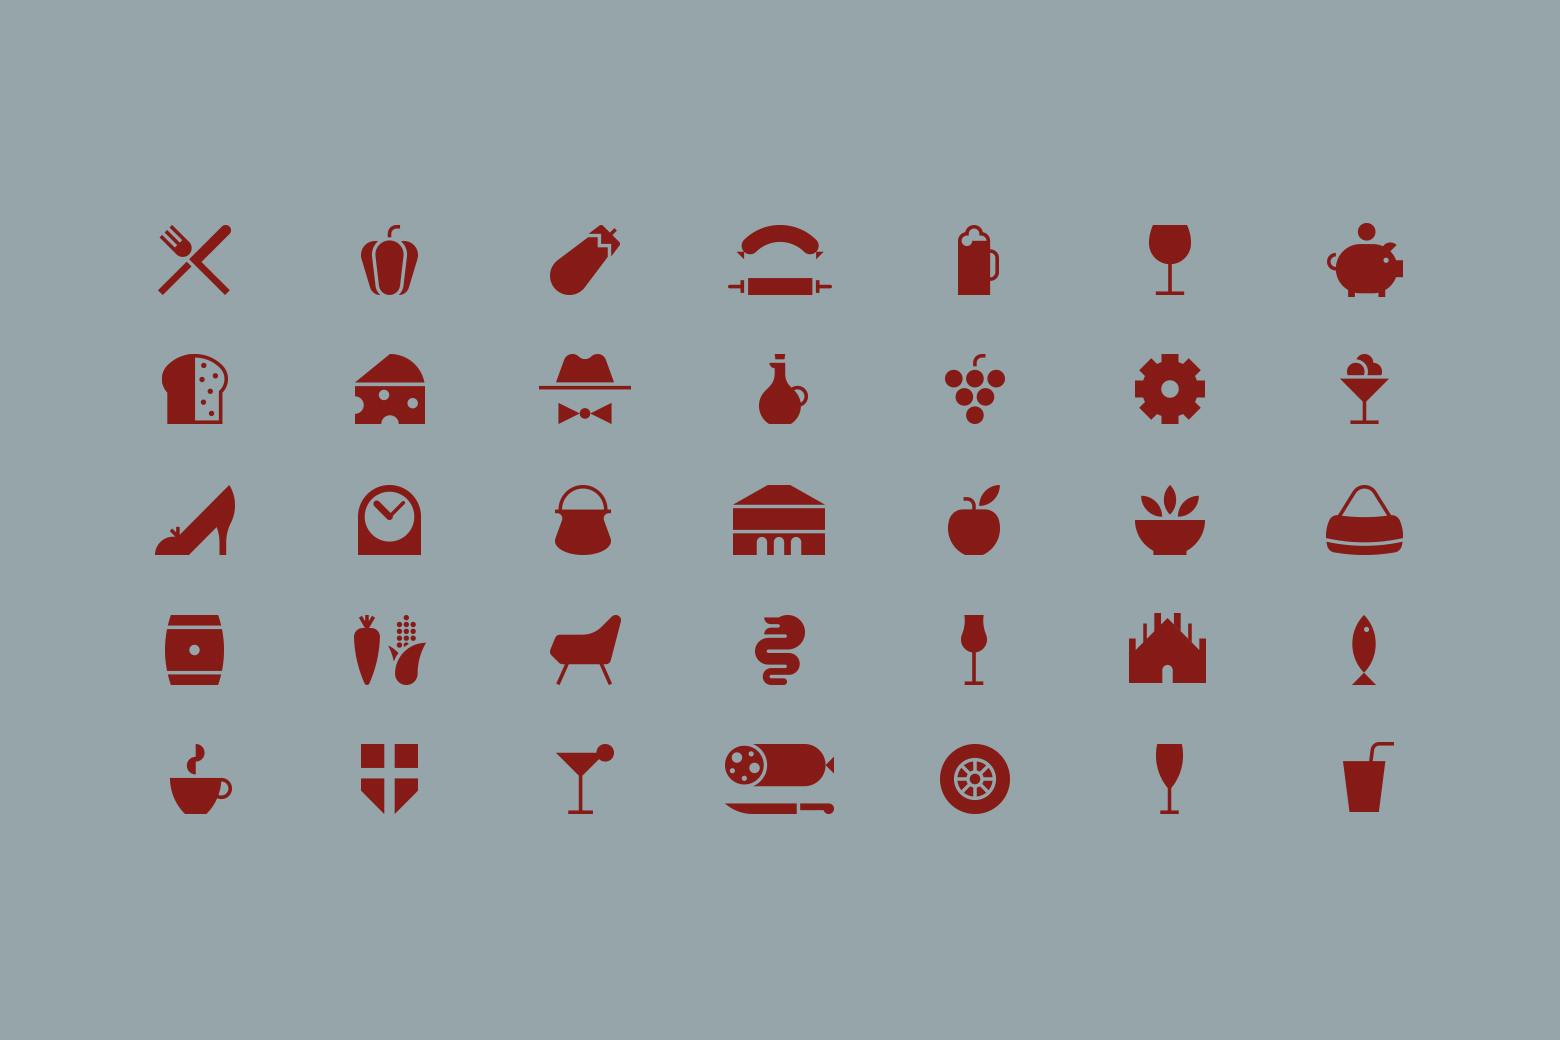 03_Pictograms